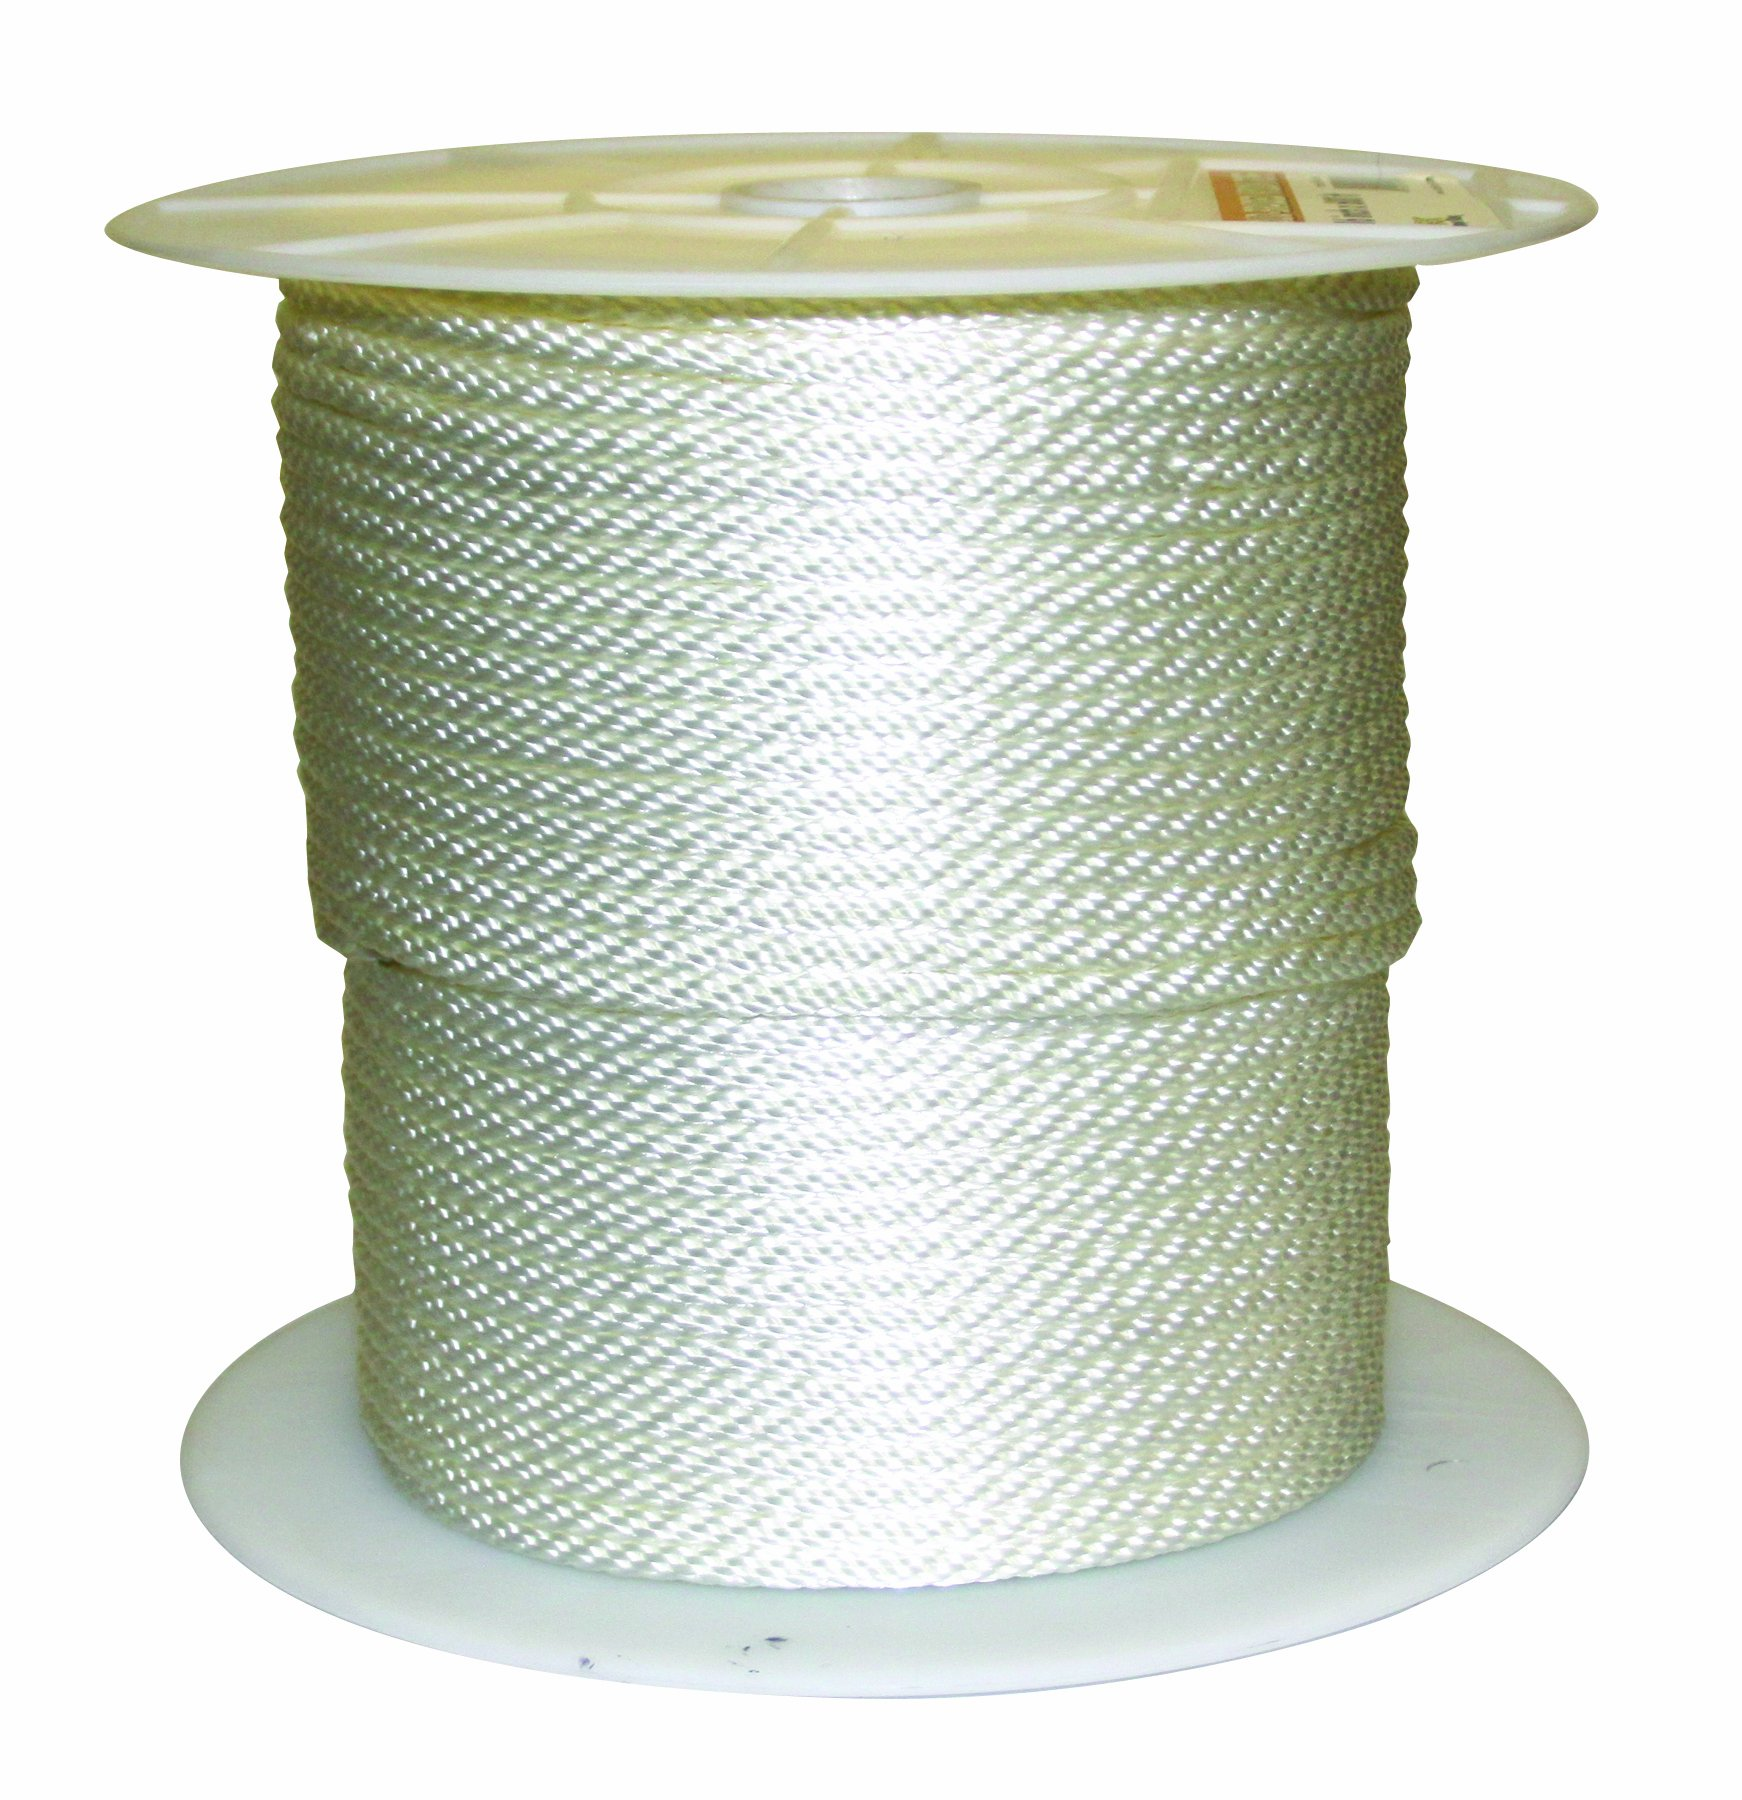 Rope King SBN-516600 Solid Braided Nylon Rope 5/16 inch x 600 feet